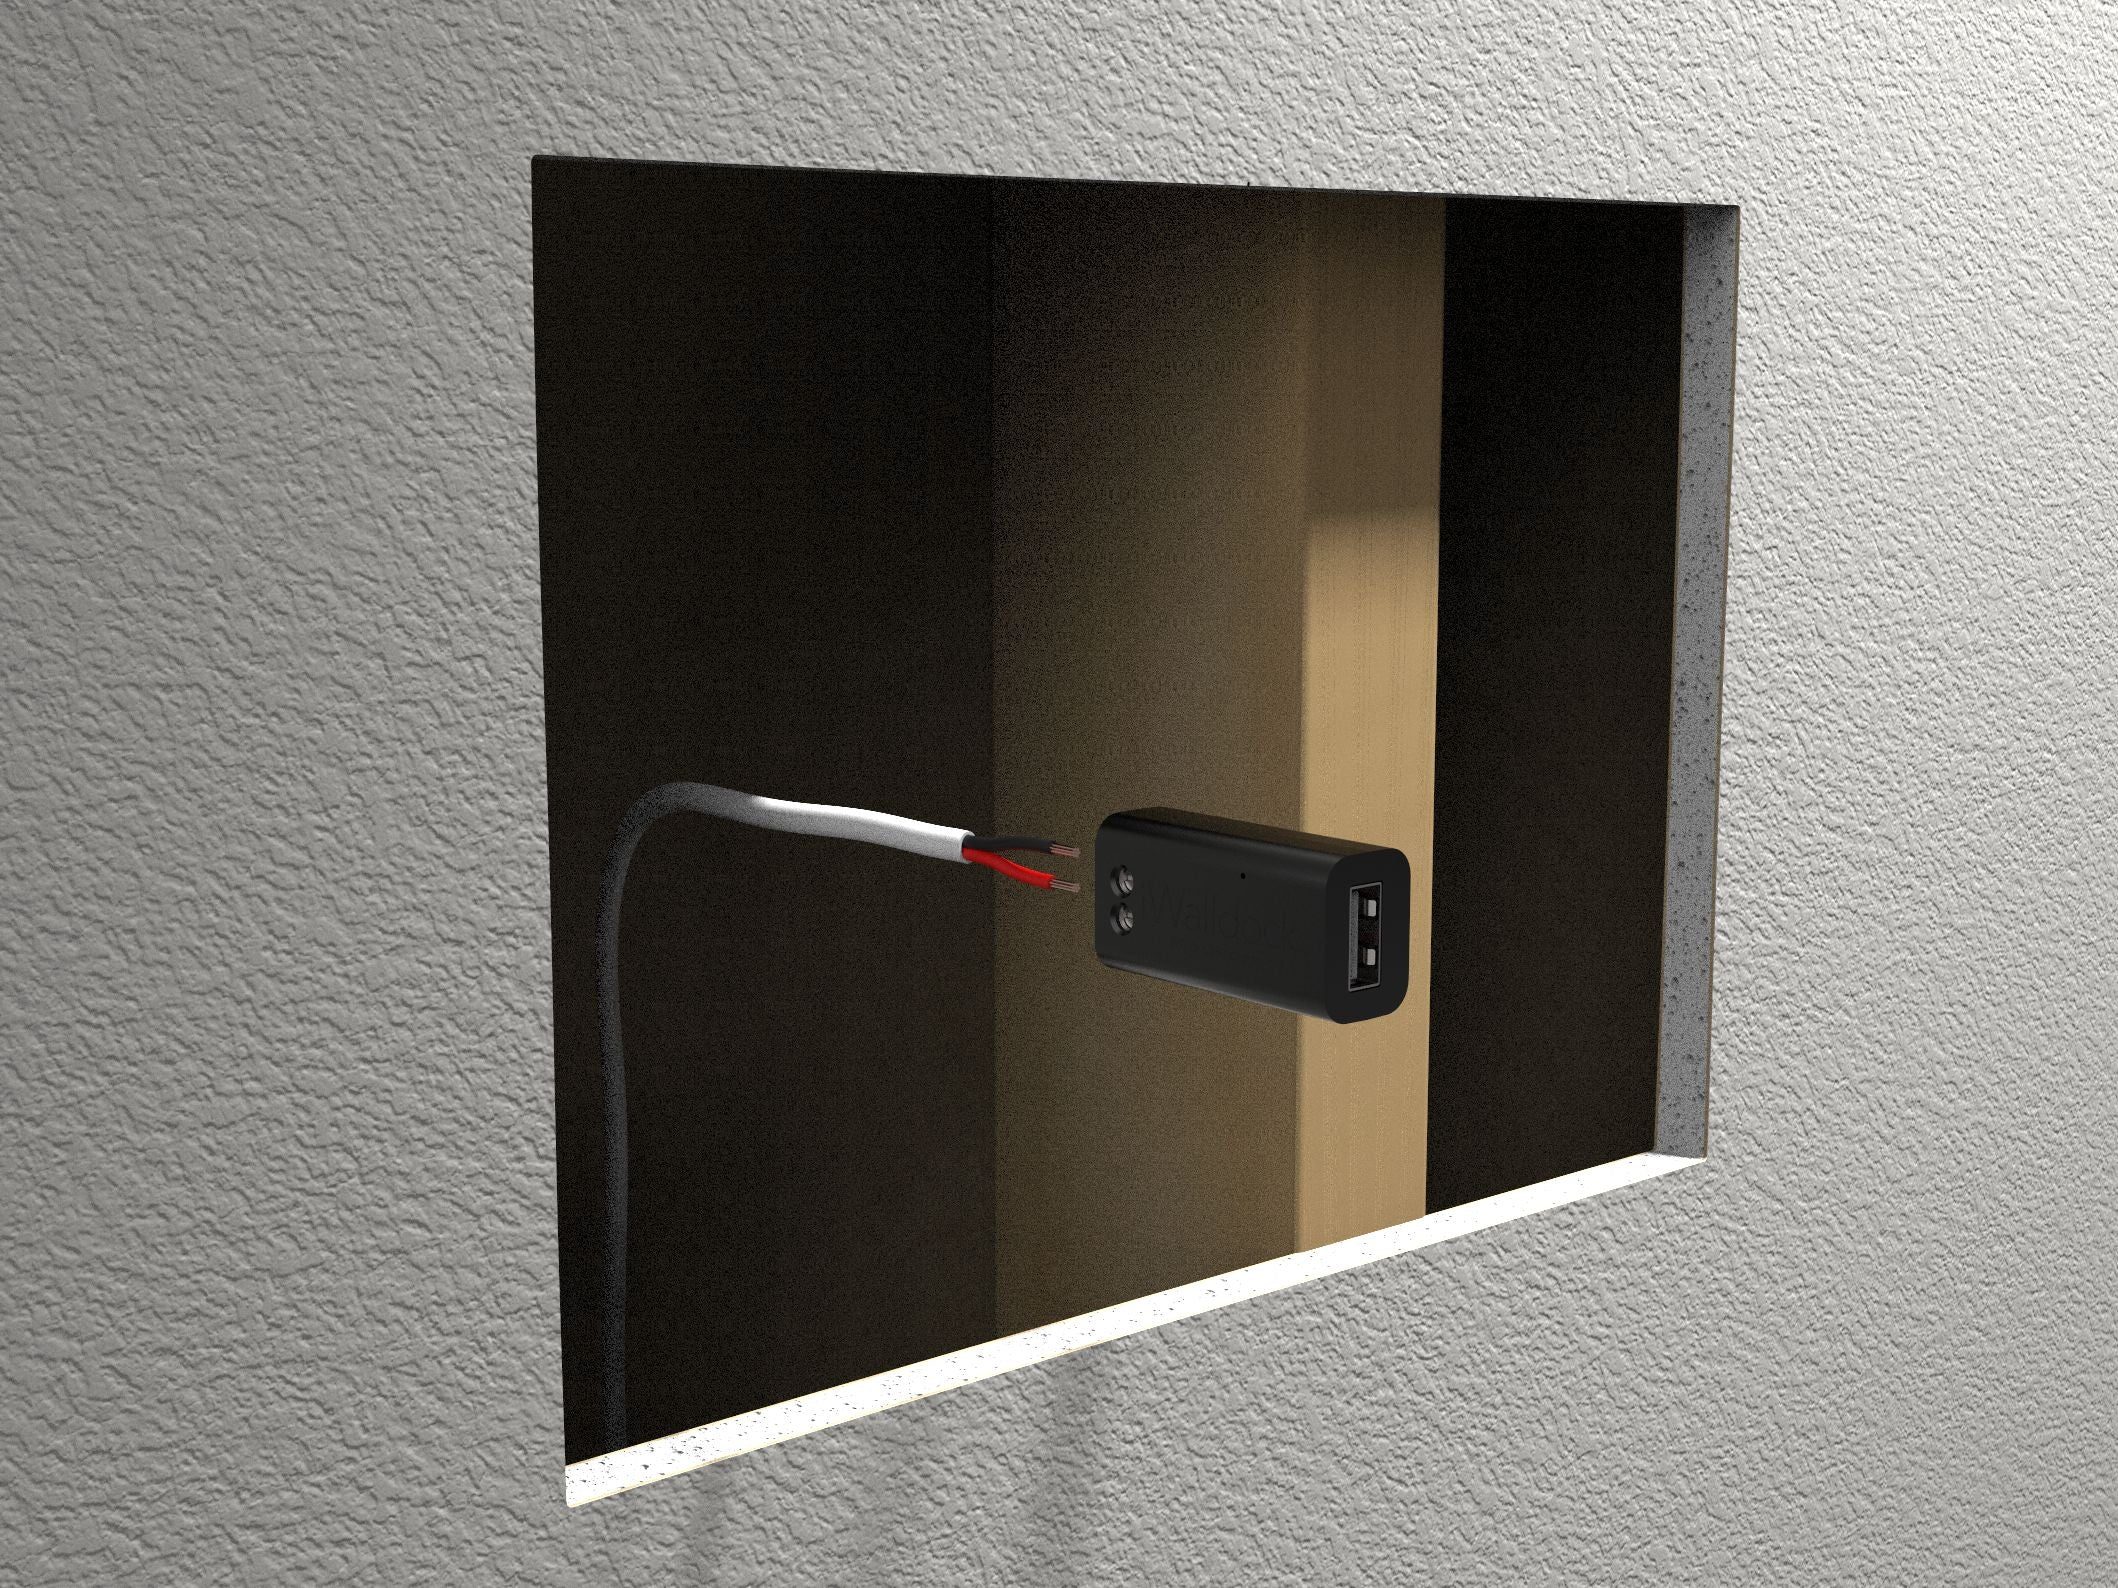 SimpliDock for iPad Installation 2-Wire USB Charging Inside Wall